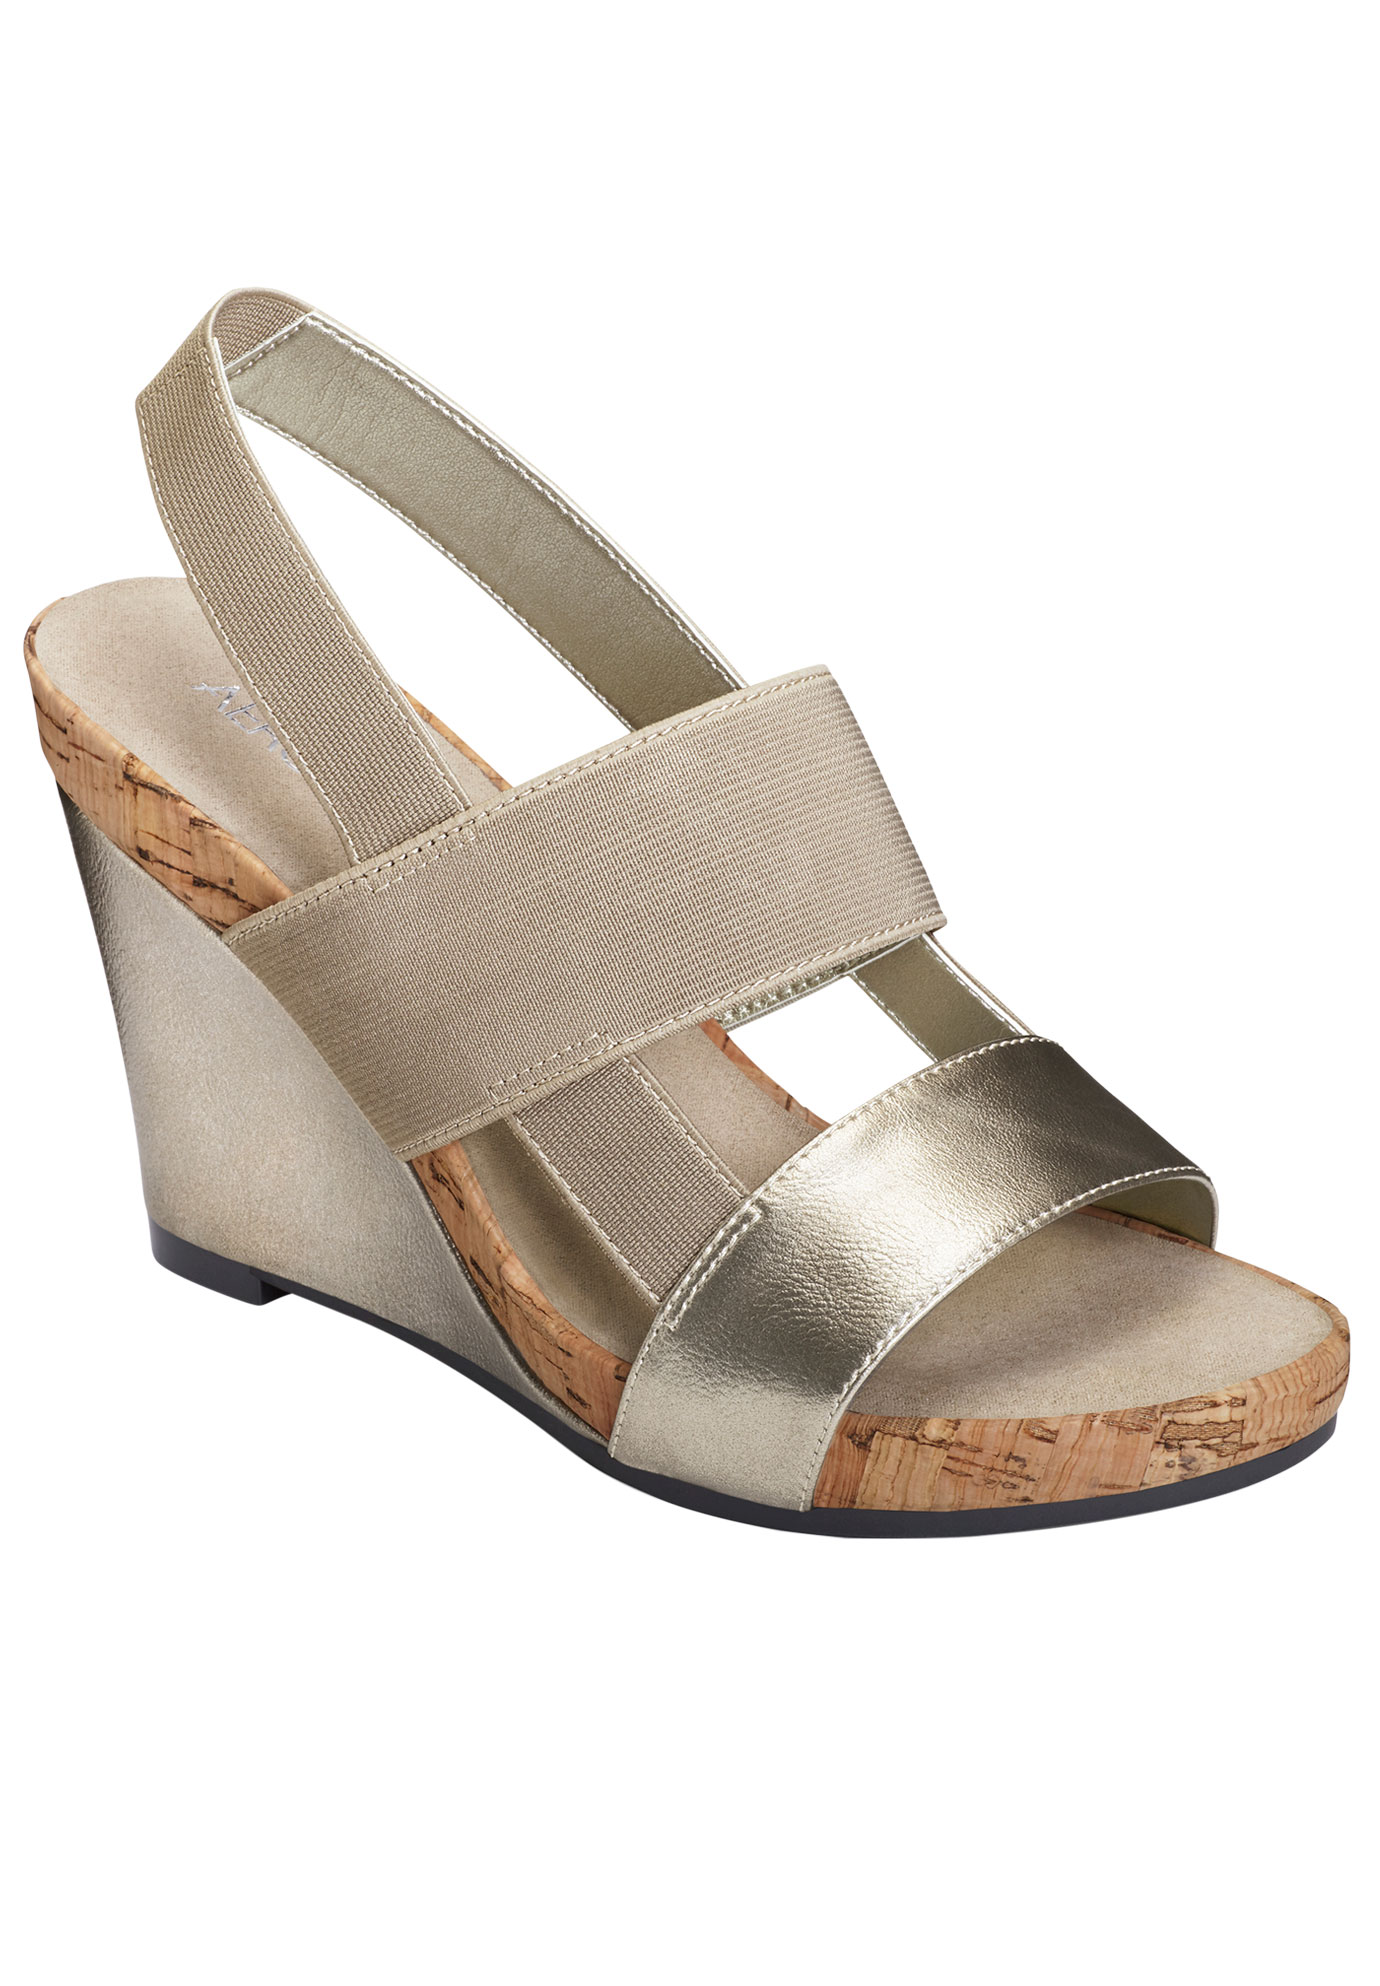 Magnolia Plush Wedge by Aerosoles®,